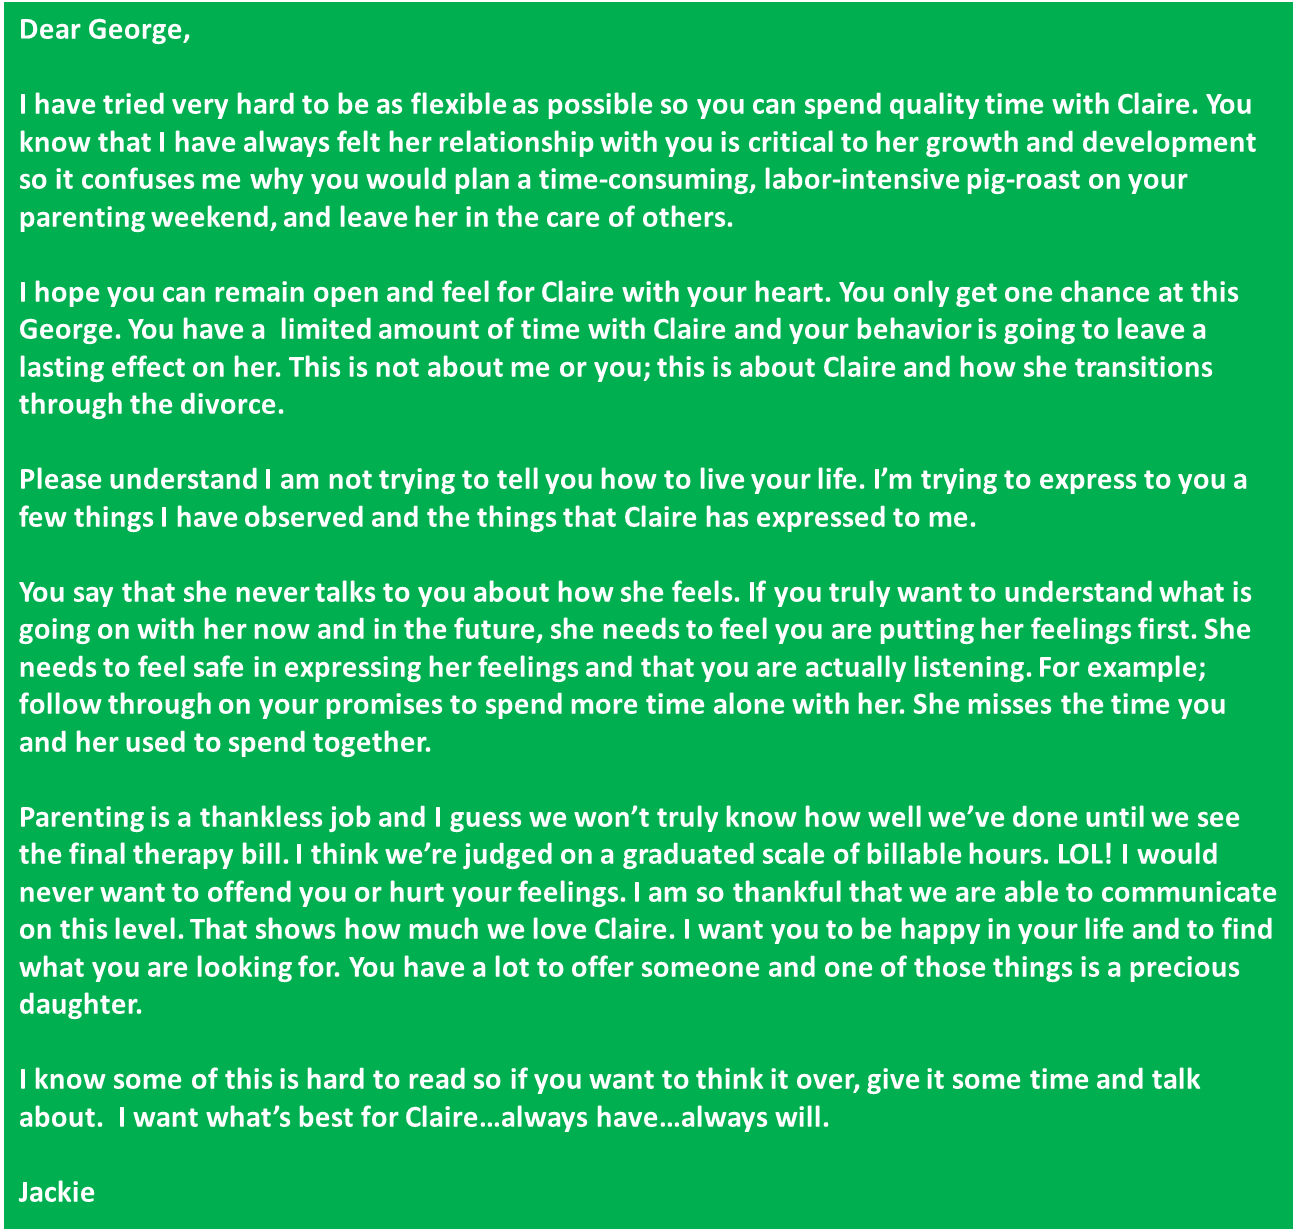 email to george.PNG